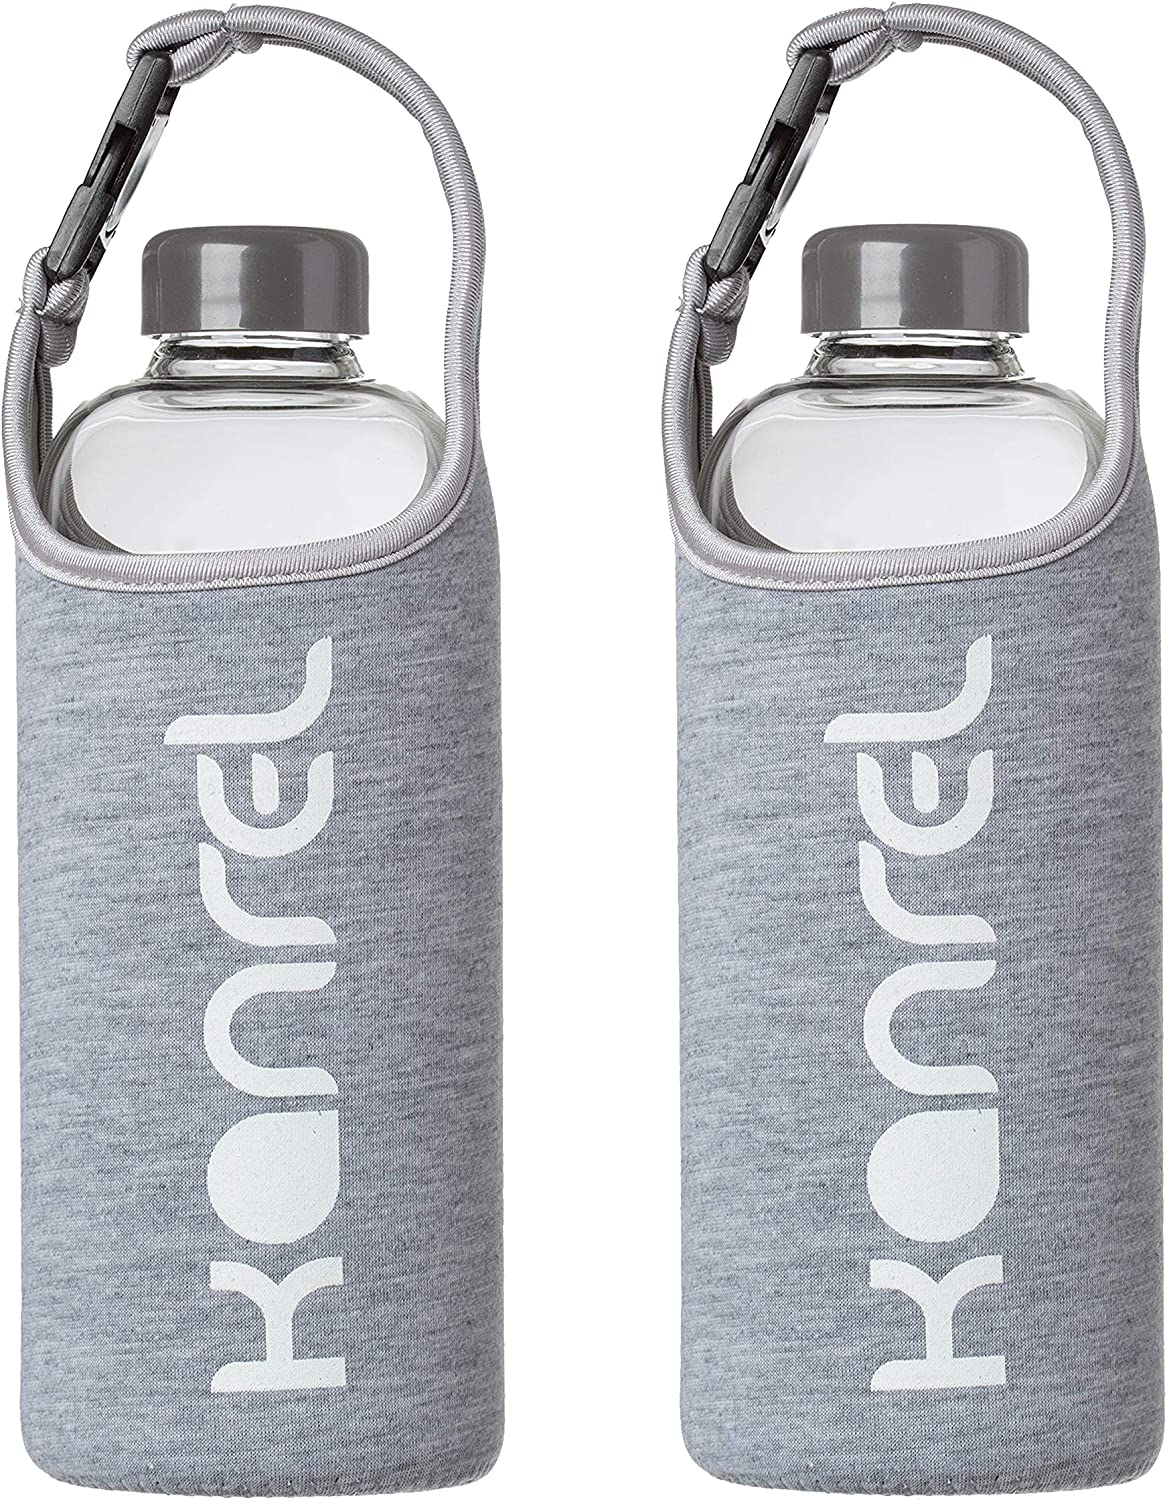 - Replacement Neoprene Protective Sleeves for 32oz Bottles Keep Your Drinks Insulated with This Reusable Cover Kanrel Water Bottle Sleeve 32 oz Ideal for Carrying Glass Bottles 2 Pack Set